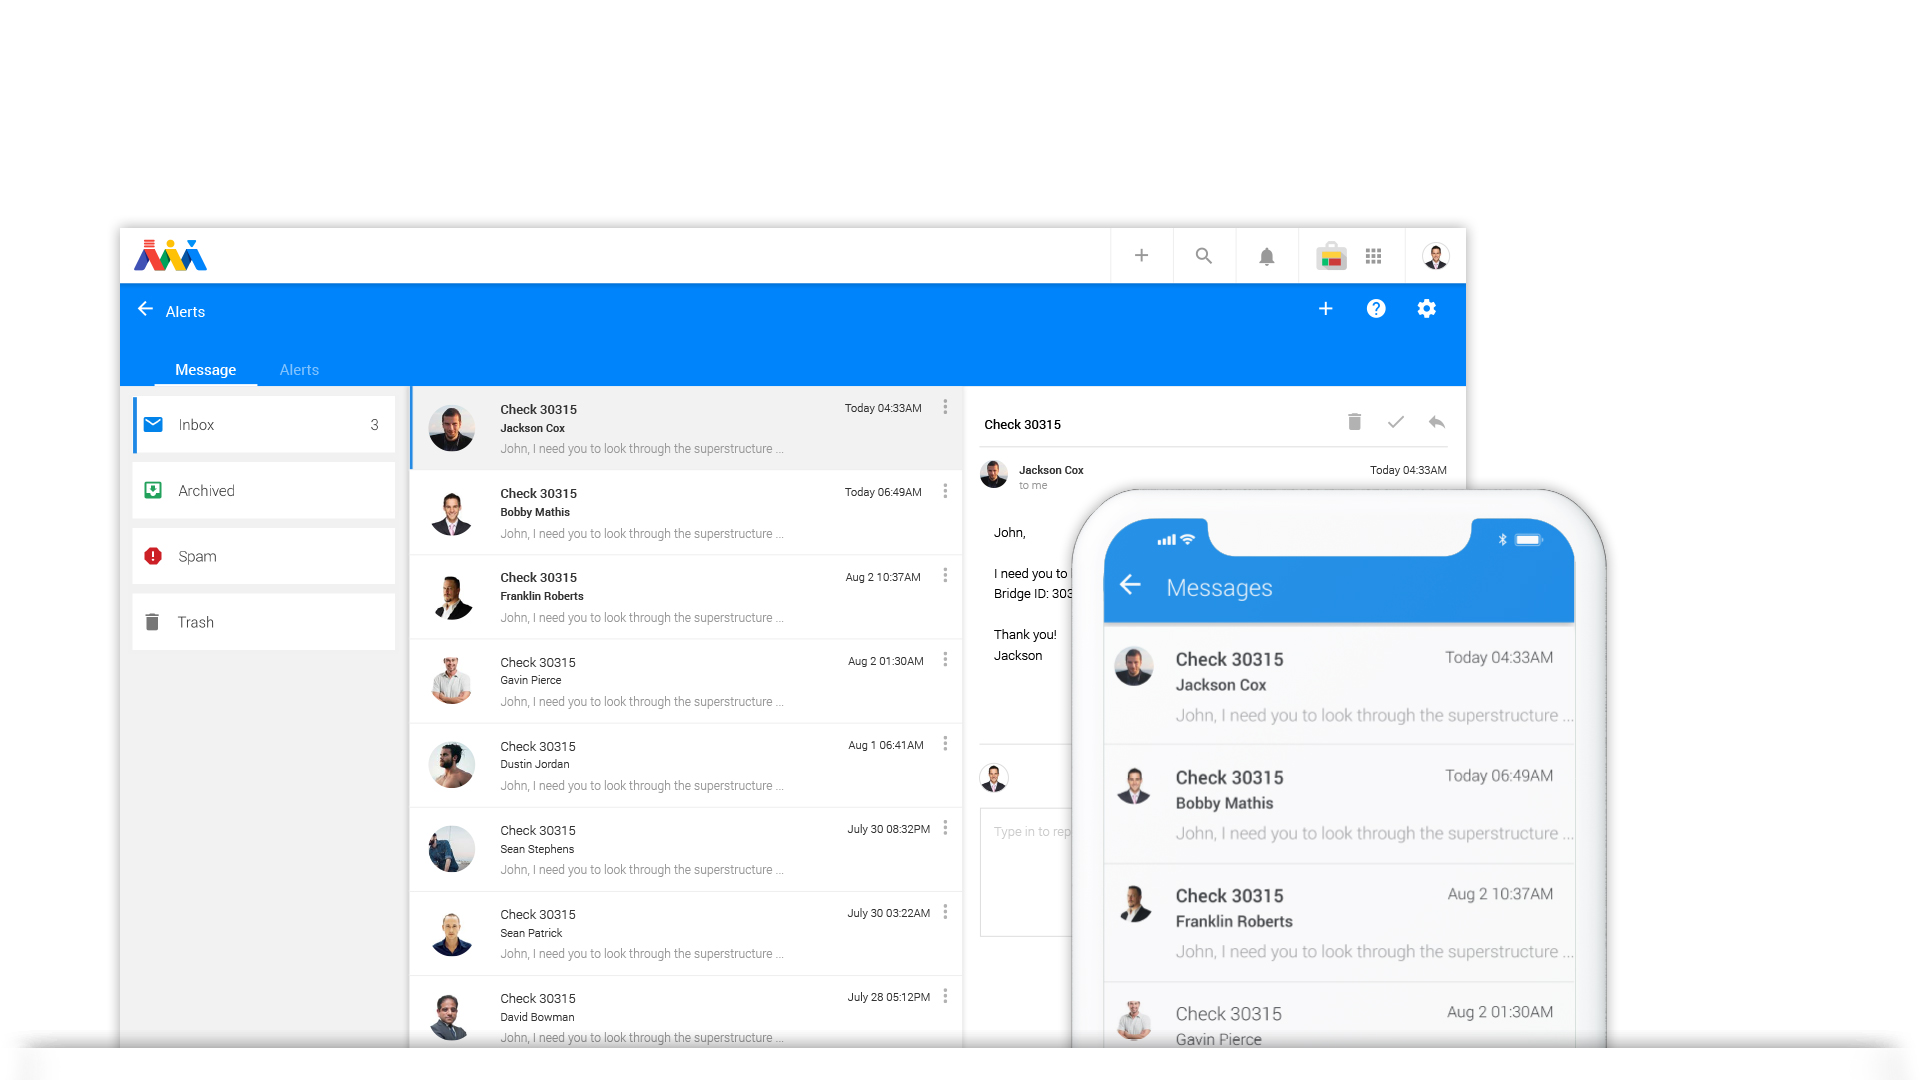 Communication - Atom allows first responders to communicate with one another and remote managers during critical situations. Atom gives users the ability to flag for help as well as identify others in need of assistance; all in real-time.